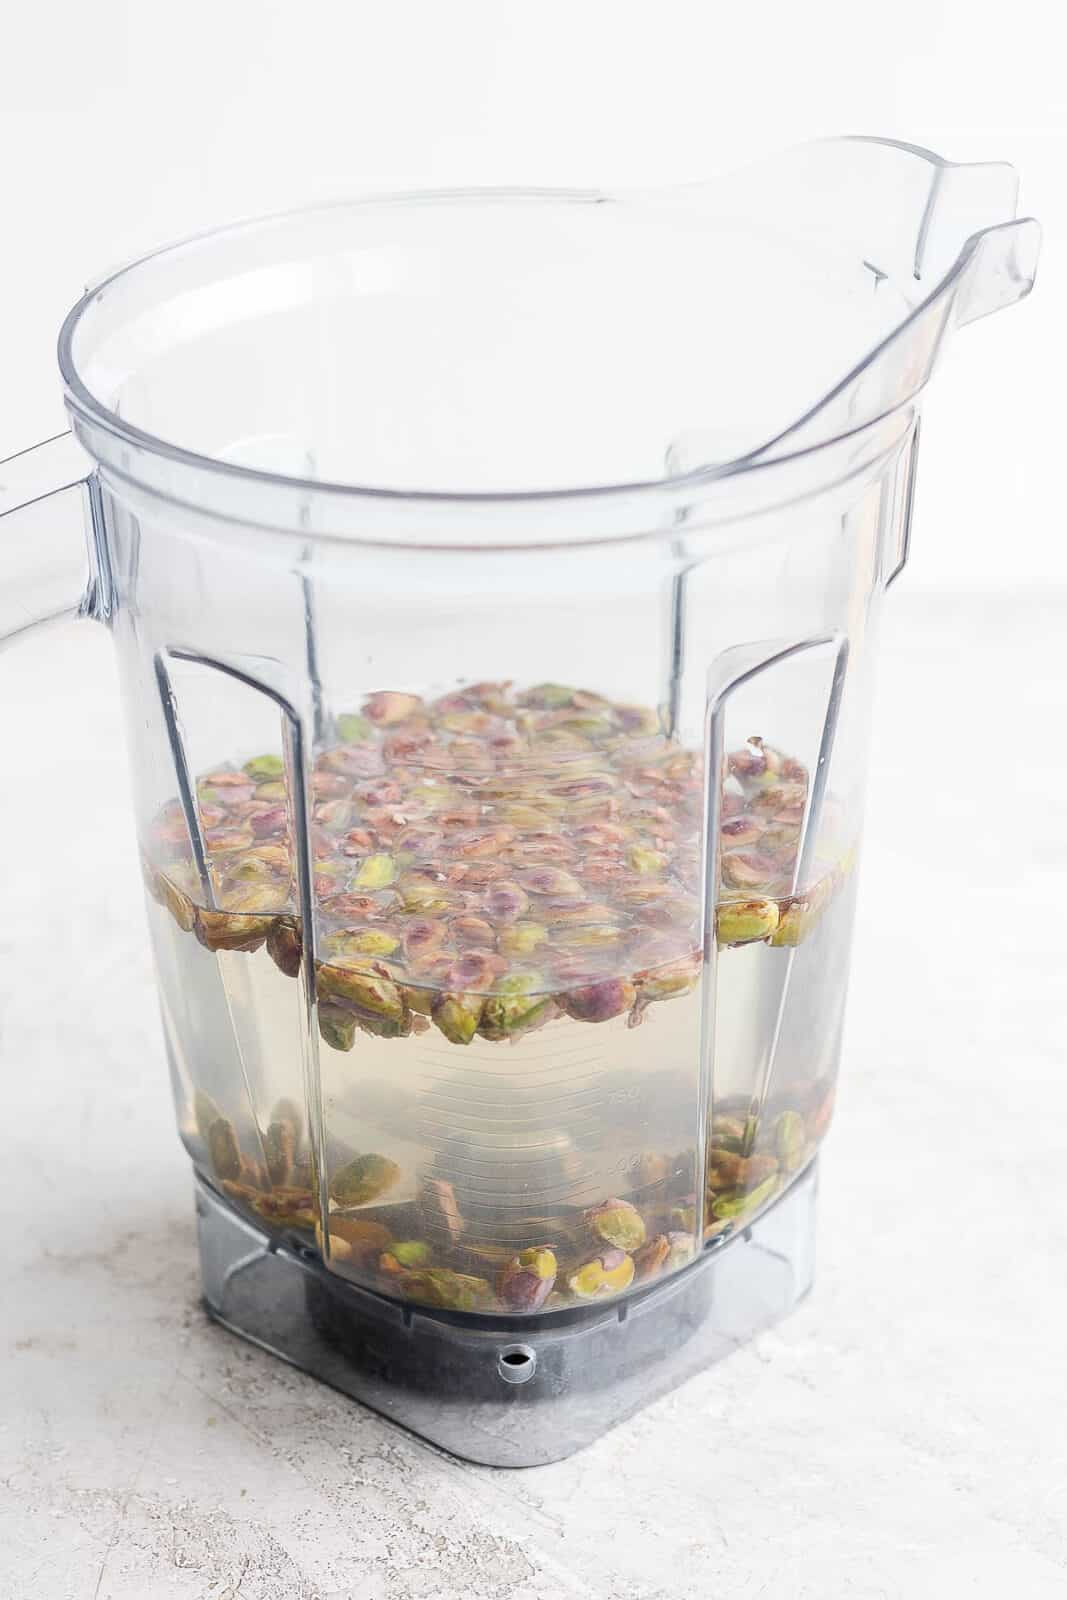 Pistachios in a blender with water.